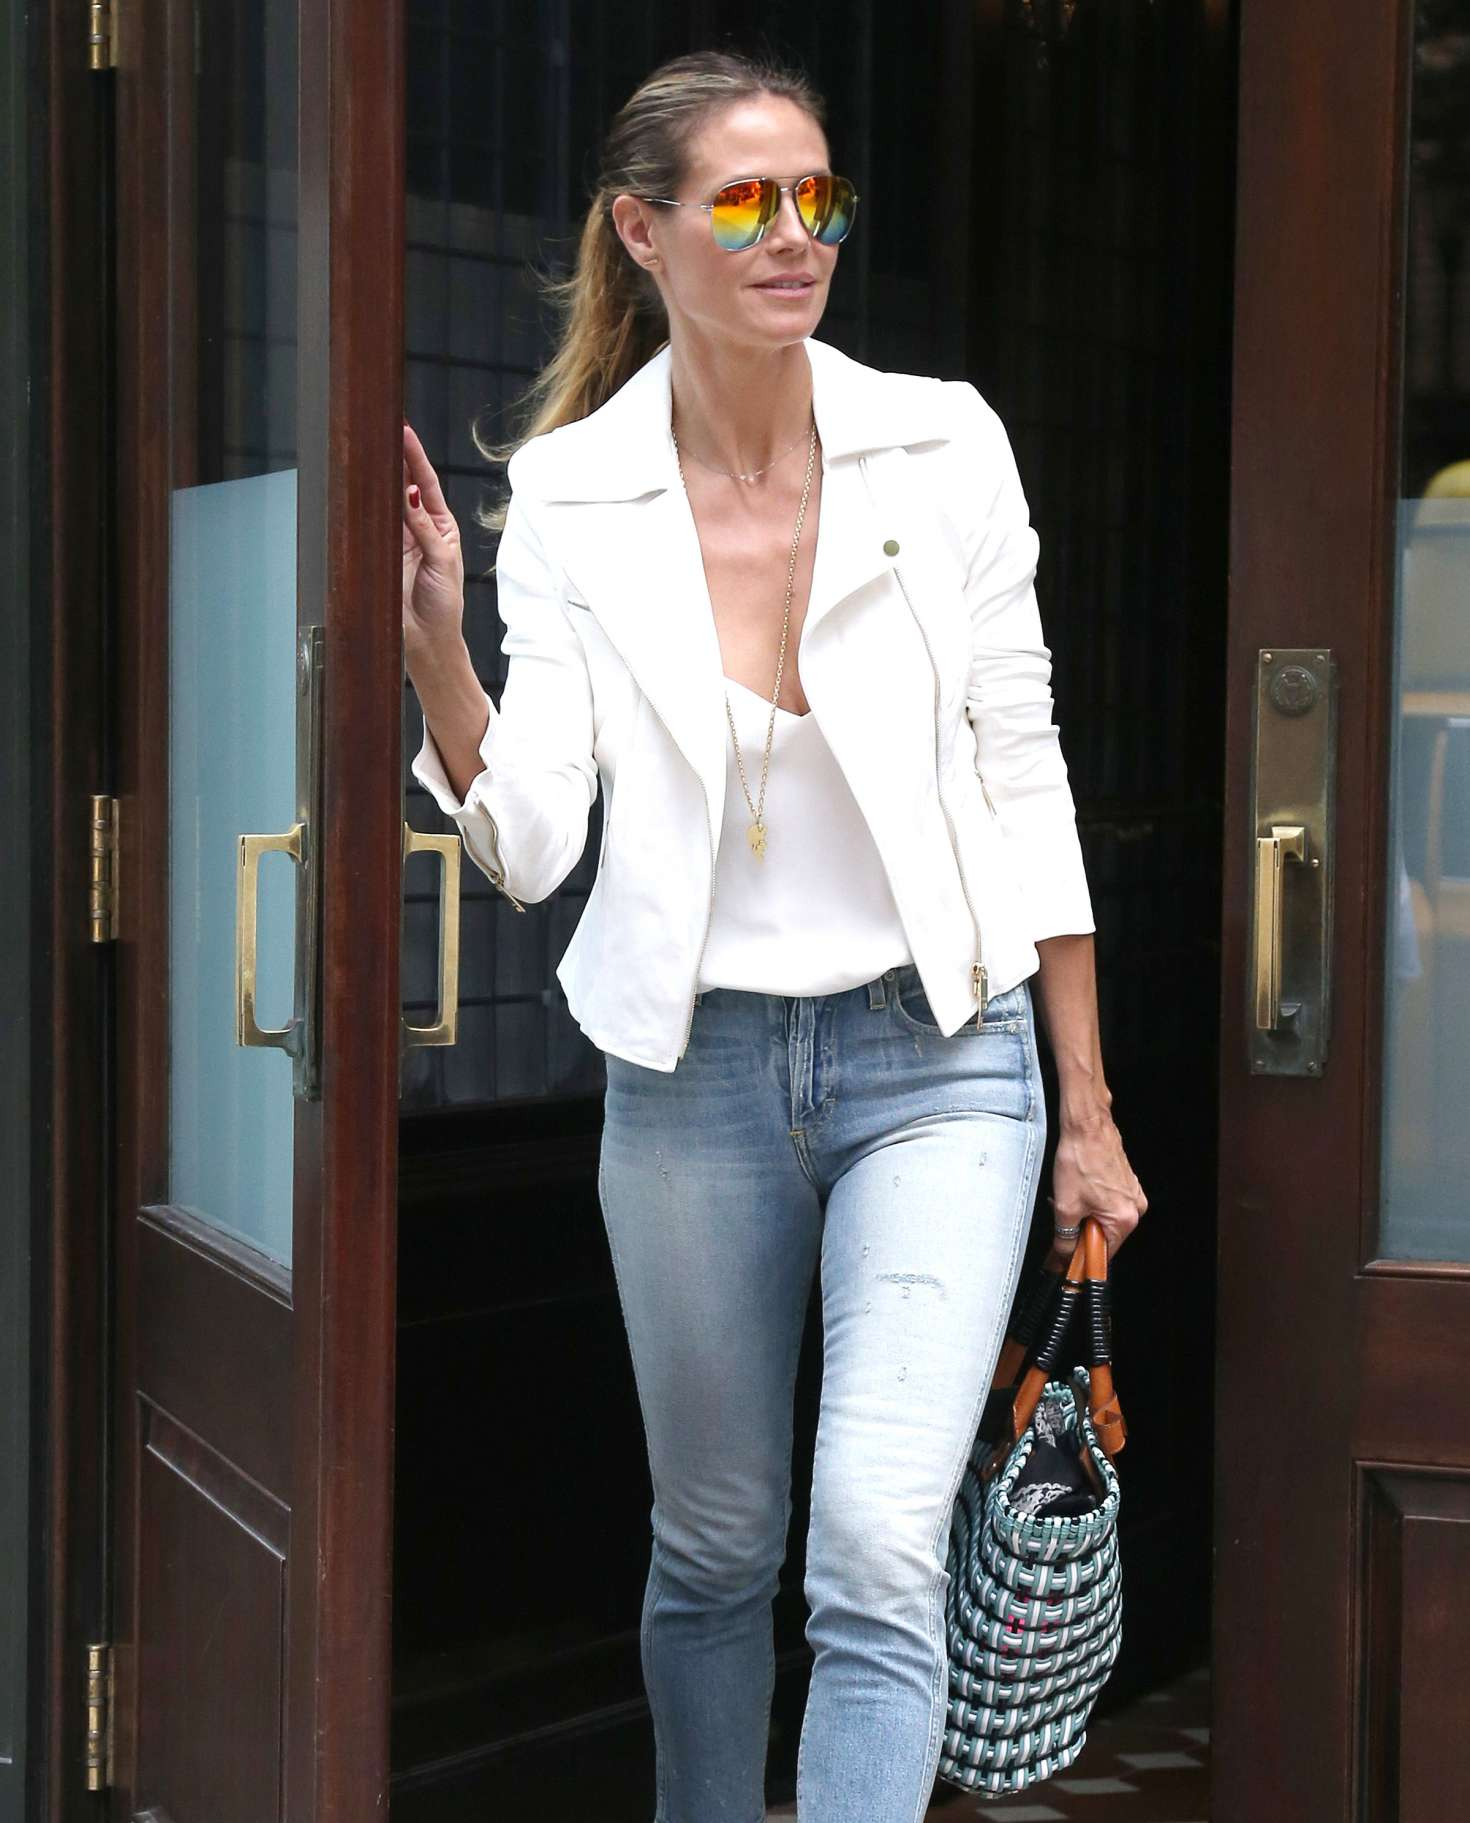 Heidi Klum 2017 : Heidi Klum Out and about in NY -10